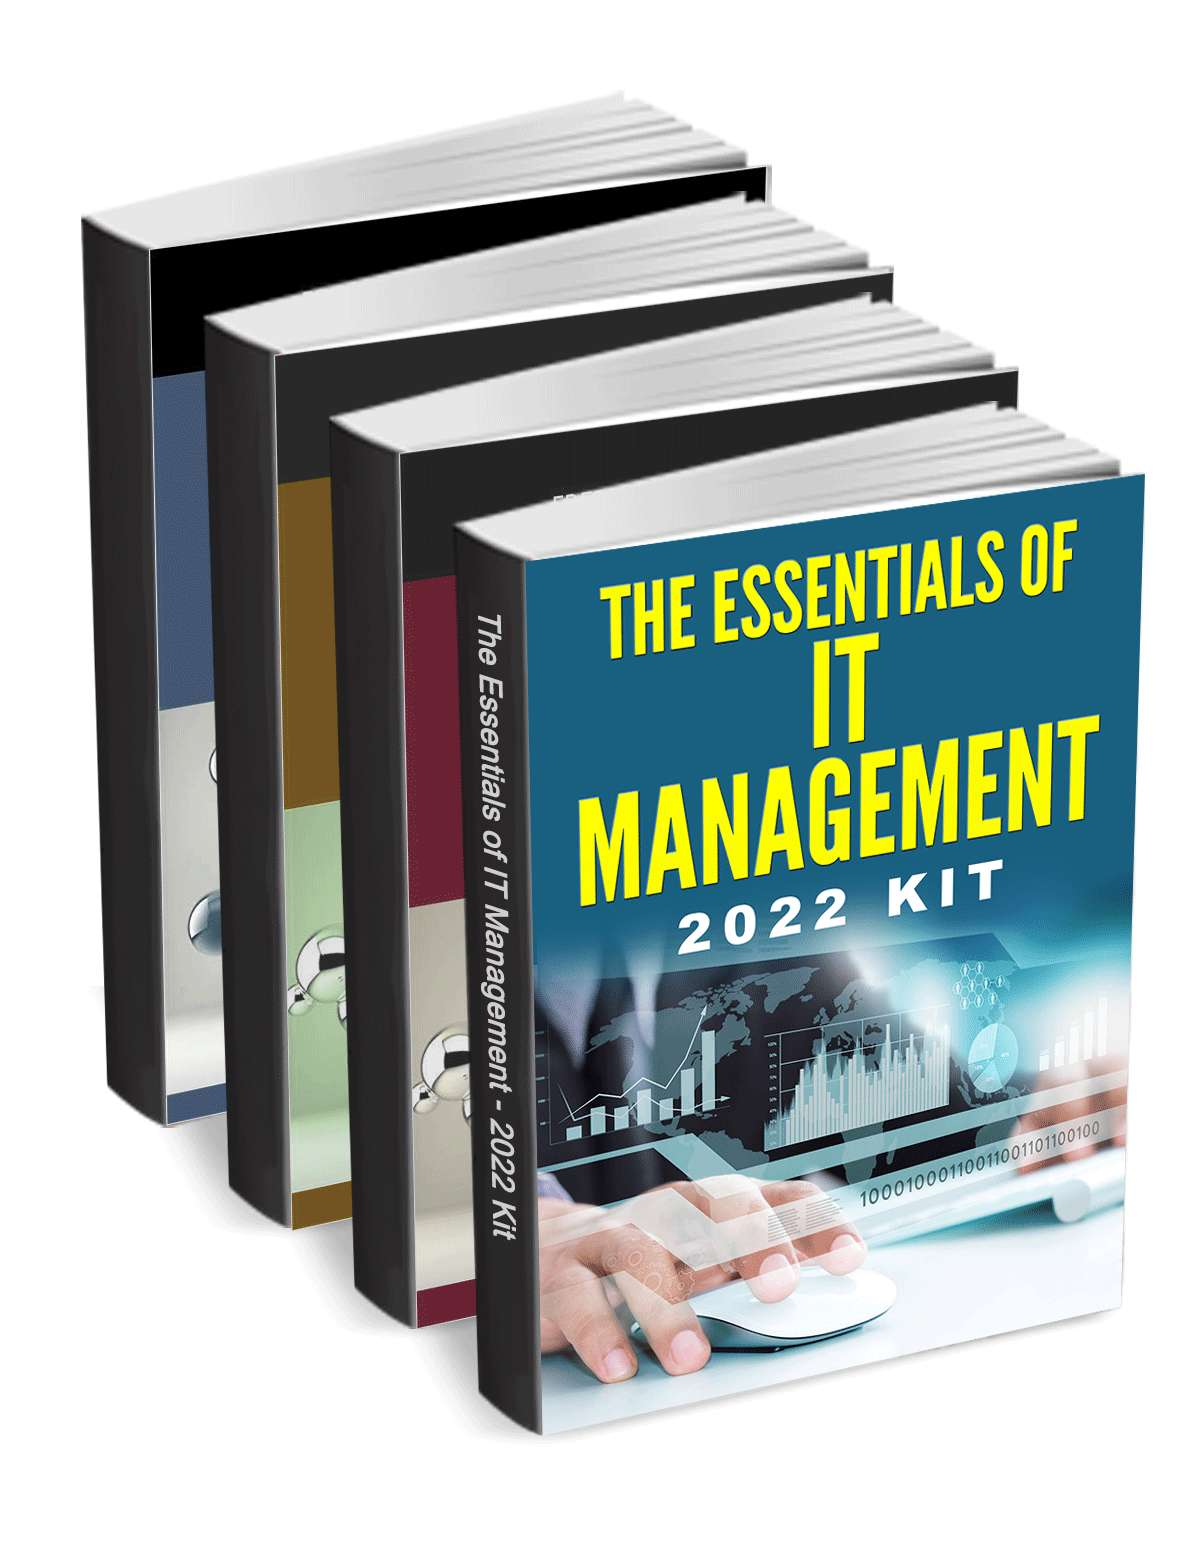 Essential IT Management Resources for Spring 2016